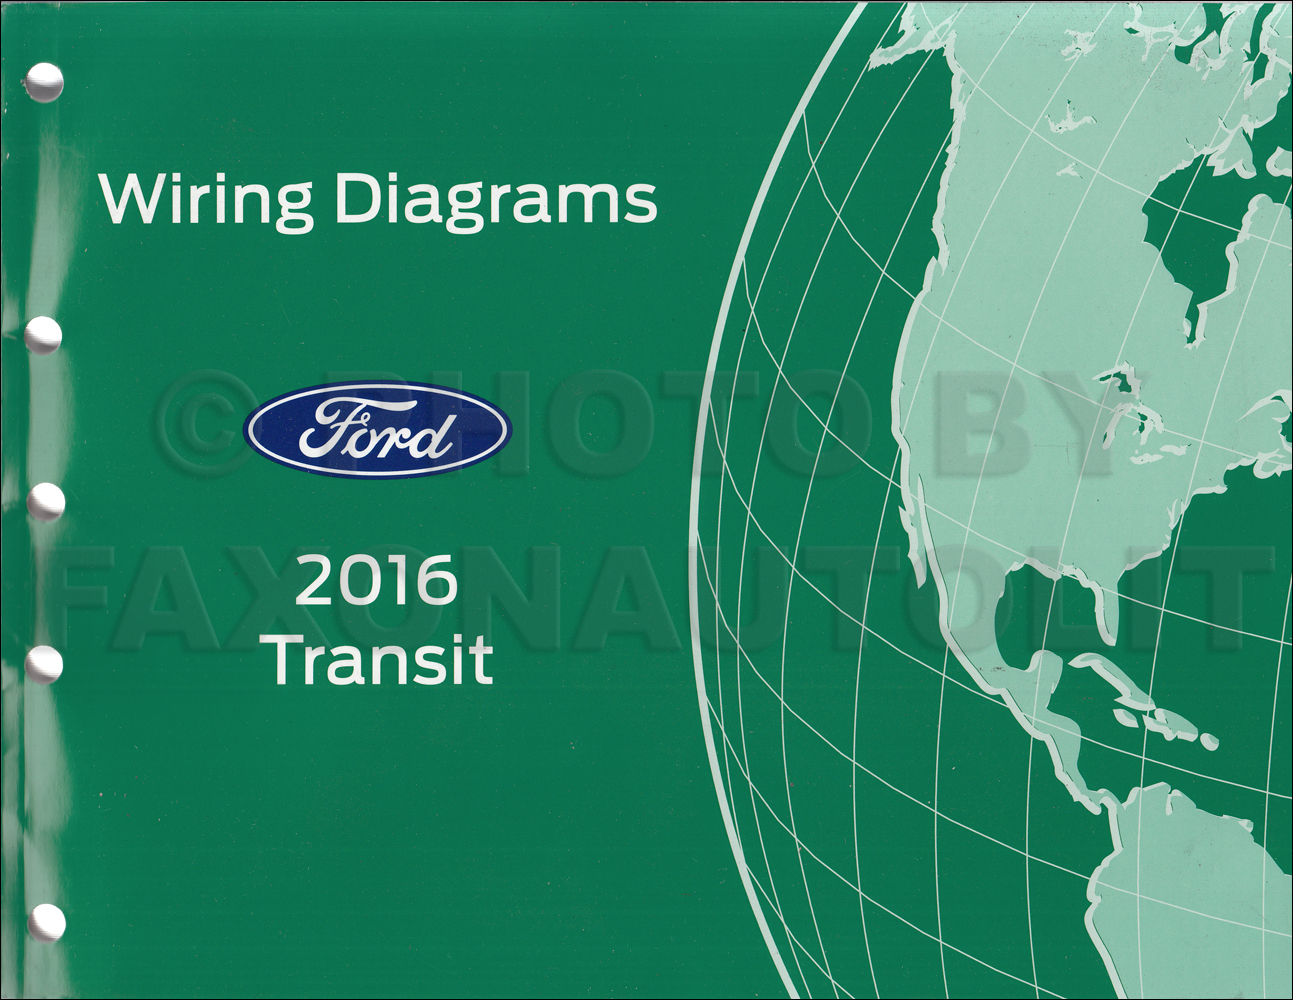 [DIAGRAM_3ER]  2016 Ford Transit Wiring Diagram Manual Original | Ford Transit Wiring Diagram |  | Faxon Auto Literature